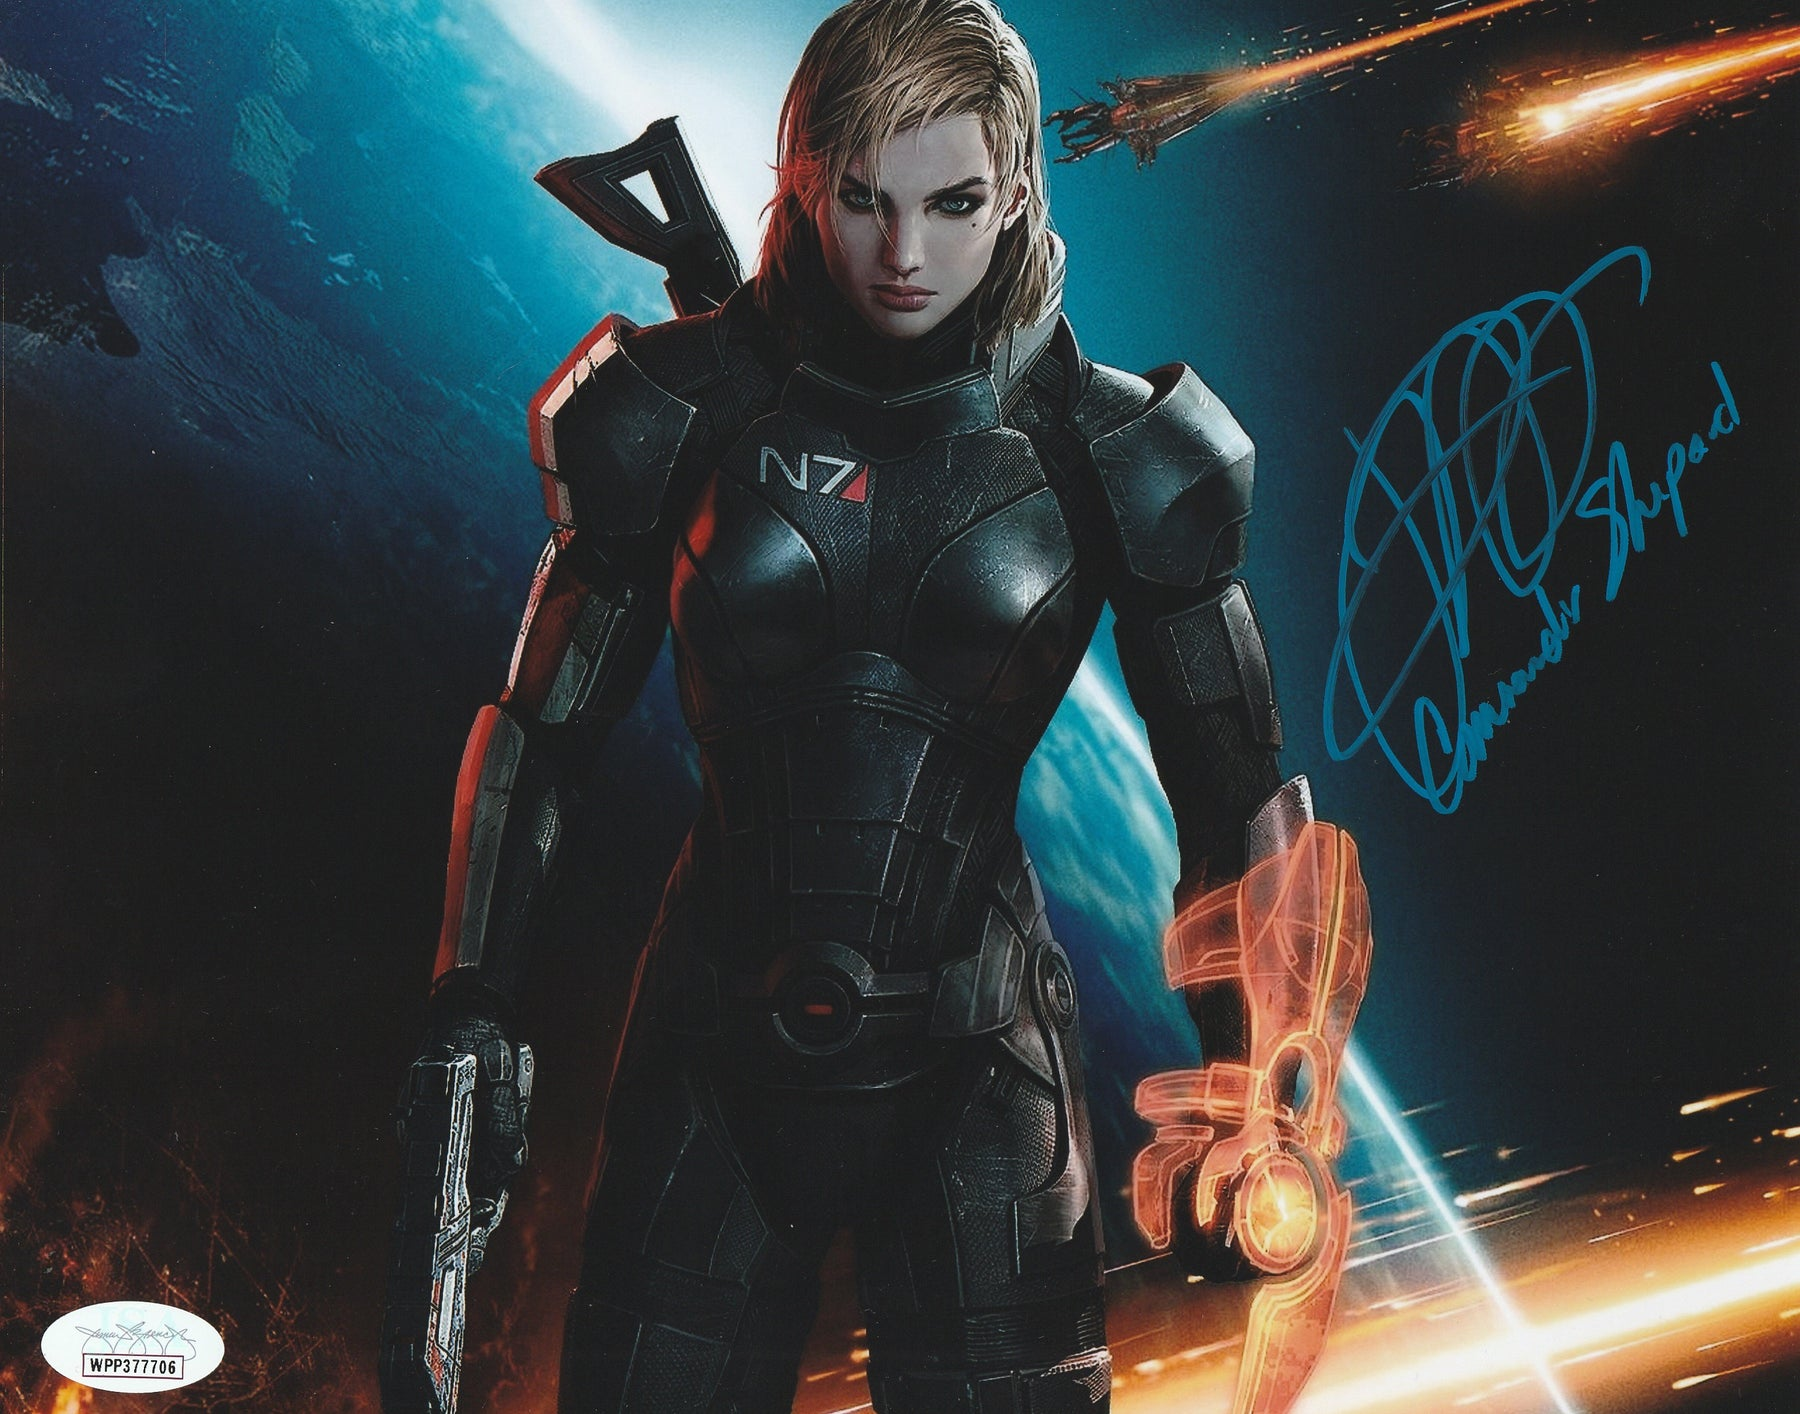 Jennifer Hale Autograph 8x10 Photo Mass Effect Shepard Signed JSA COA 1